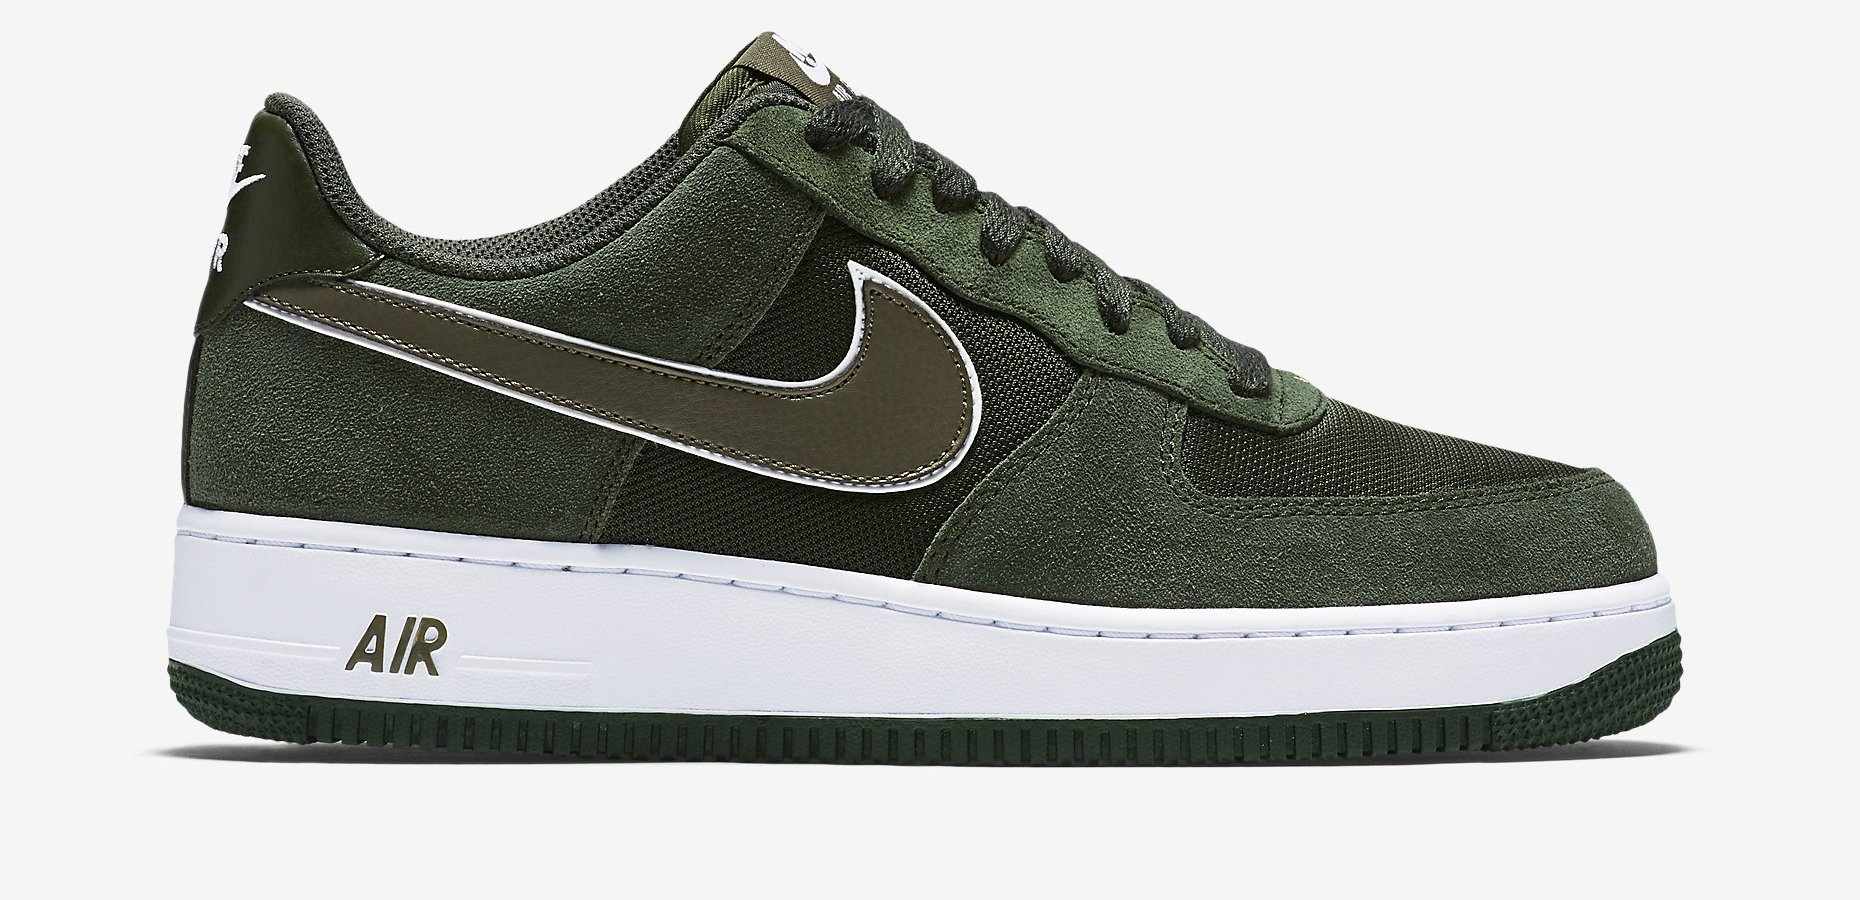 Nike Air Force 1 Low Color: Carbon Green/White-Medium Olive Style:  488298-316